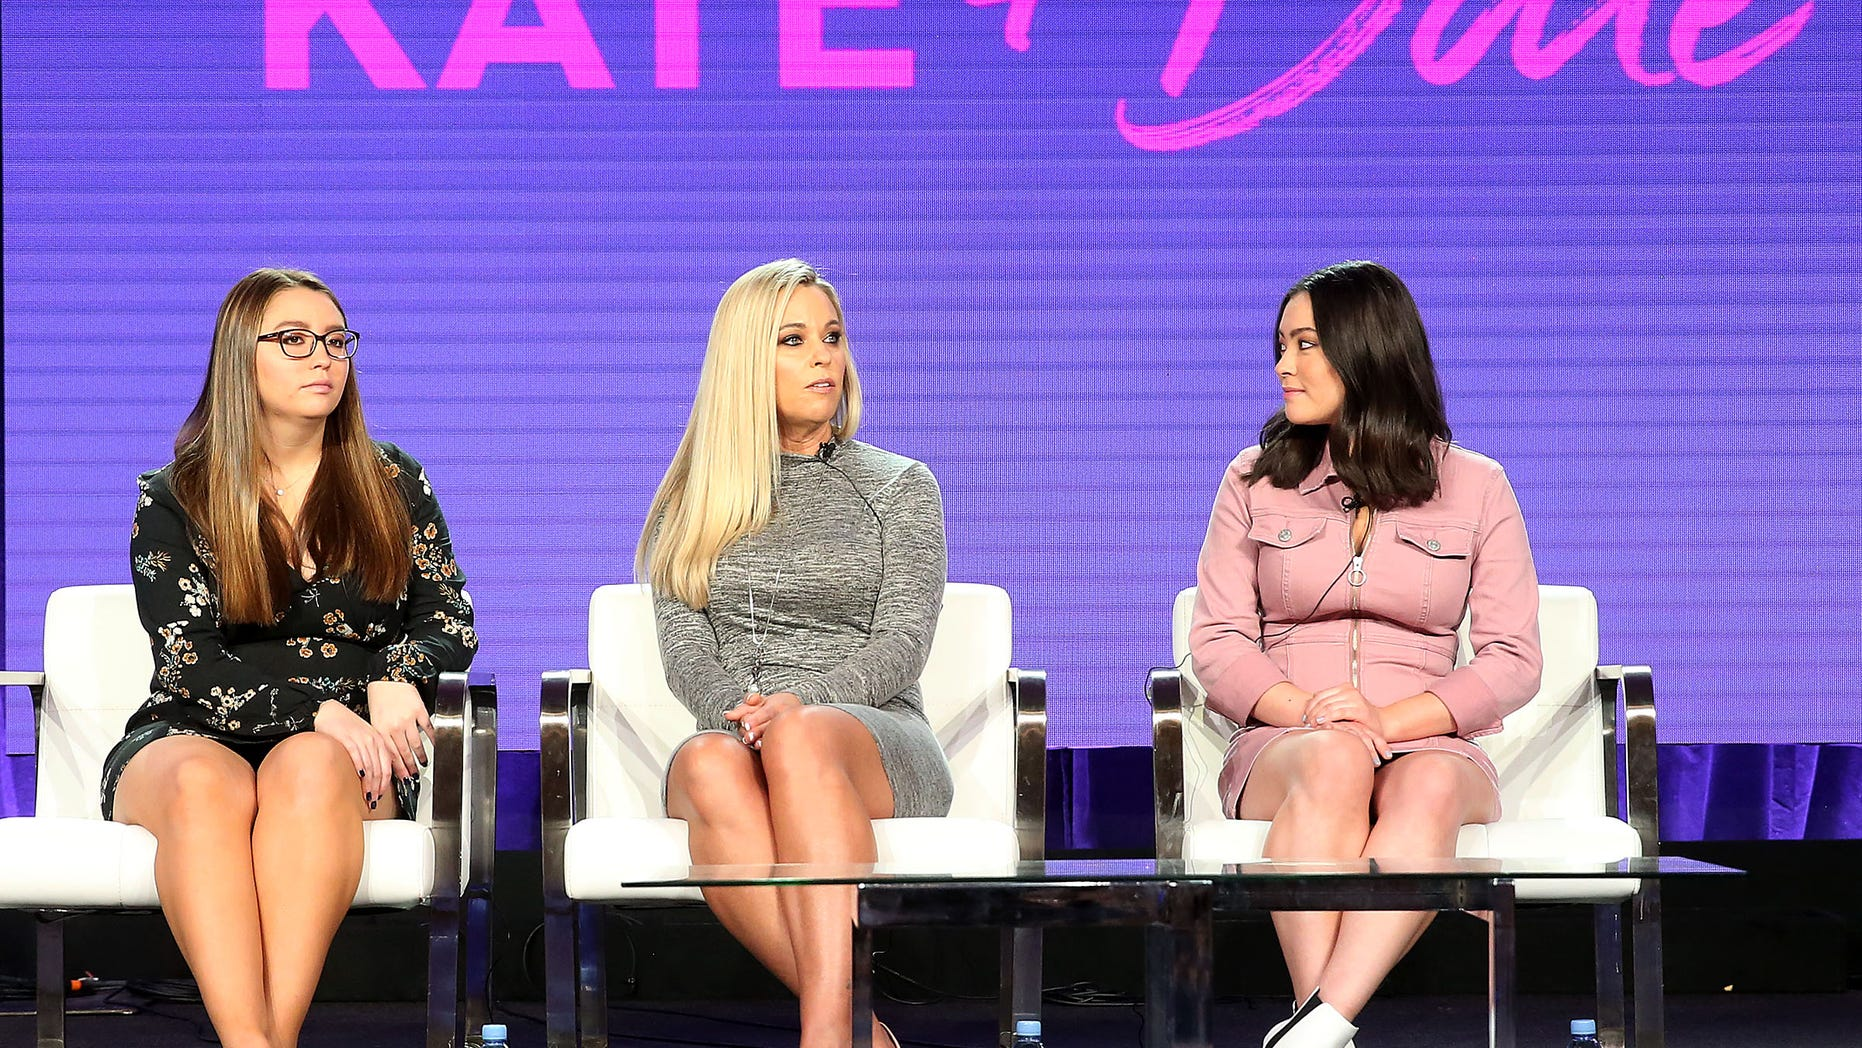 """L-R) Cara Gosselin, Kate Gosselin, and Mady Gosselin of the television show """"Kate Plus Date"""" speak during the HGTV segment of the 2019 Winter Television Critics Association Press Tour at The Langham Huntington, Pasadena on February 12, 2019 in Pasadena, Calif. (Frederick M. Brown/Getty Images"""